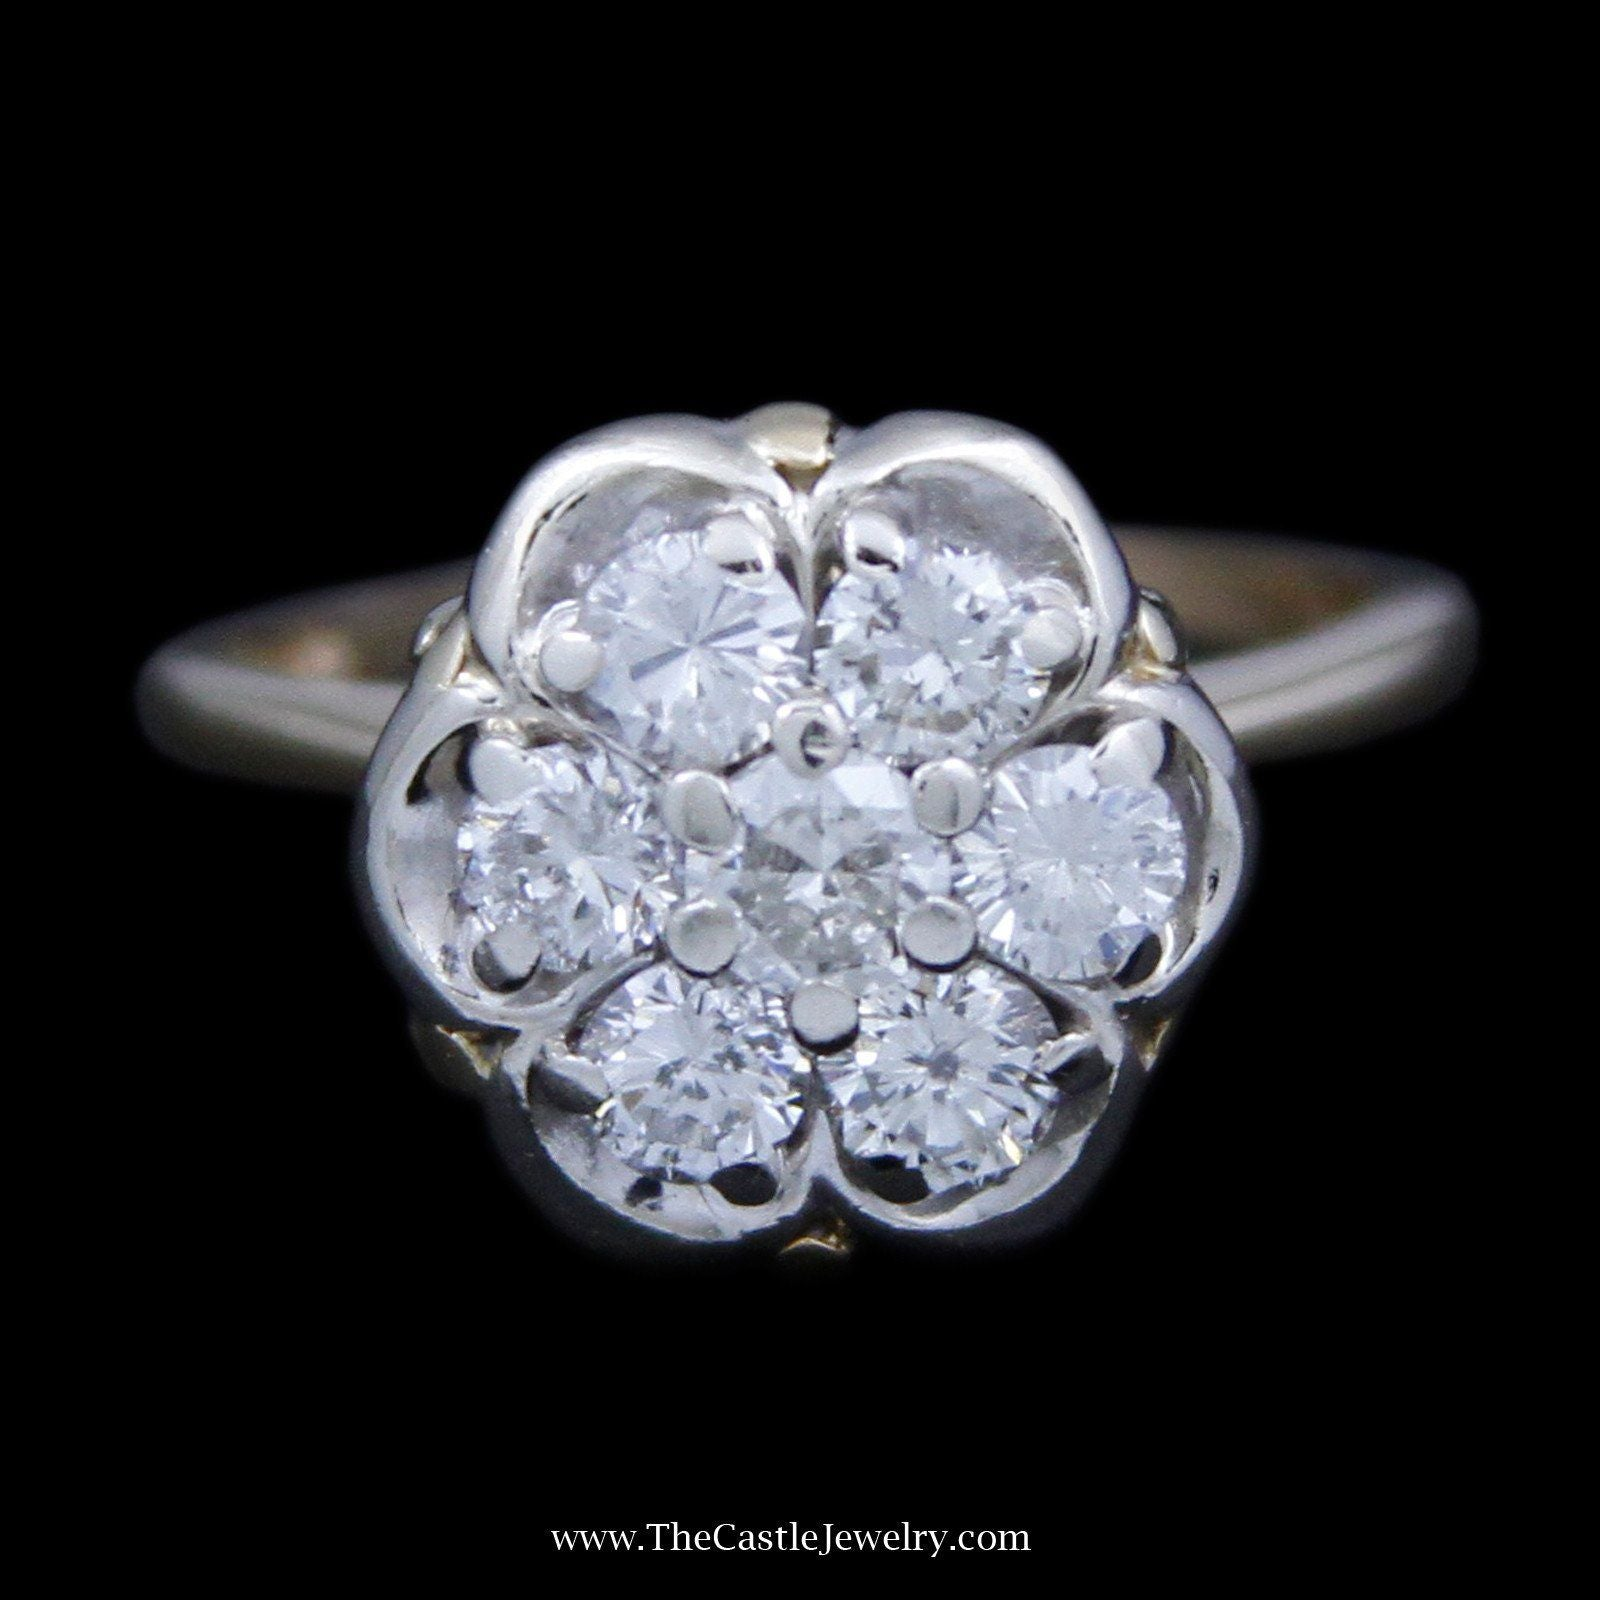 Round Brilliant Cut 7 Diamond Cluster with Fancy Design Mount in 14K Yellow Gold